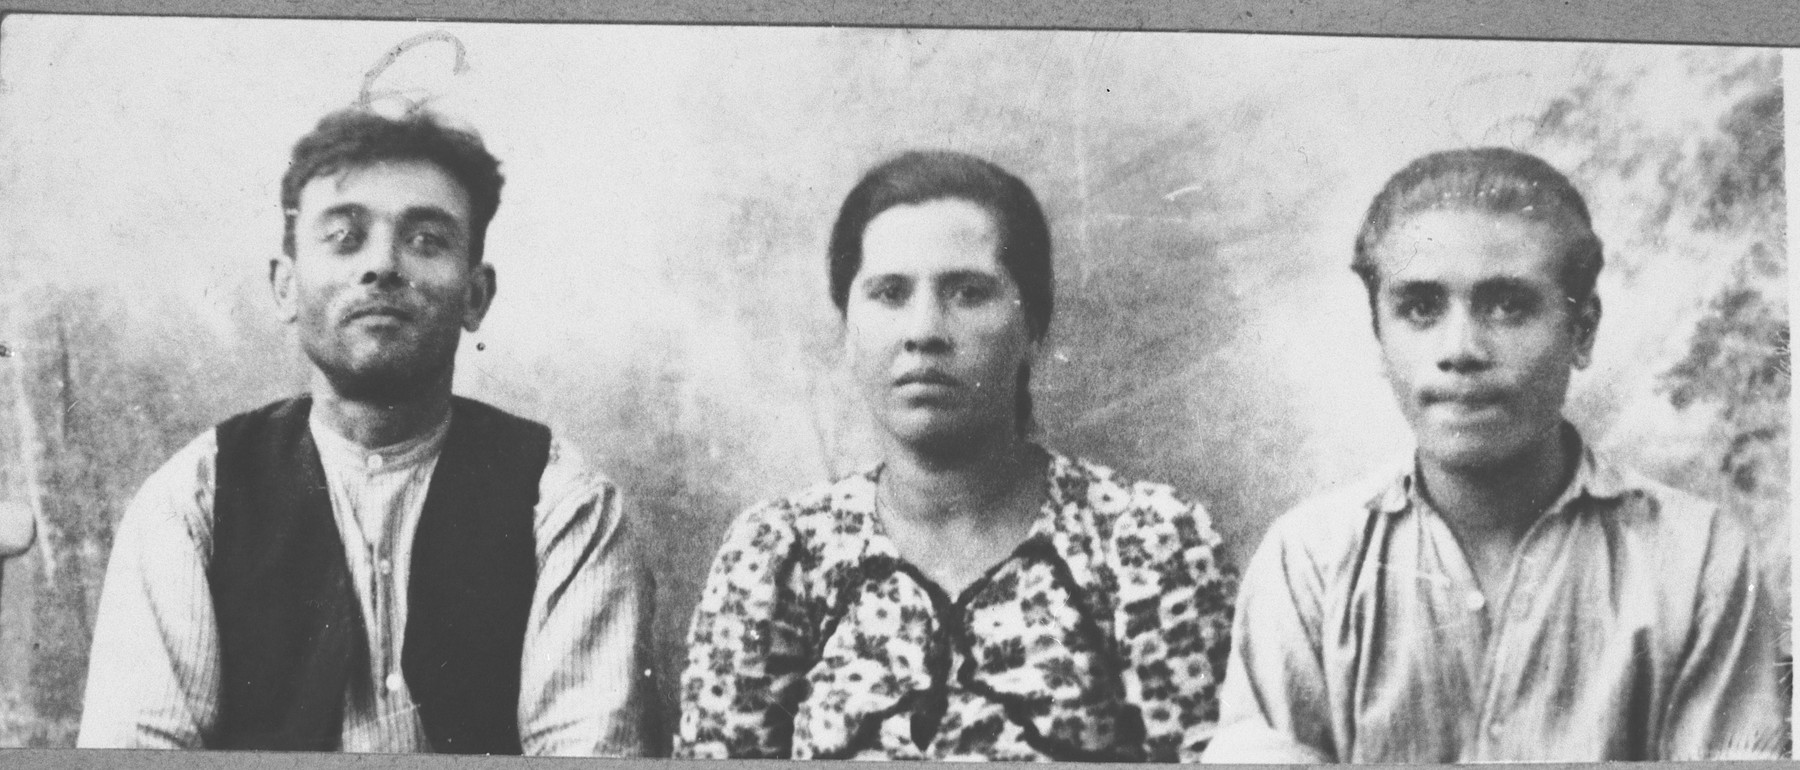 Portrait of Avram Ischach, son of Peris Ischach, Avram's wife Luna, and his son, Peris.  Avram was a greengrocer.  Peris was a student.  They lived at Bistritska 9 in Bitola.